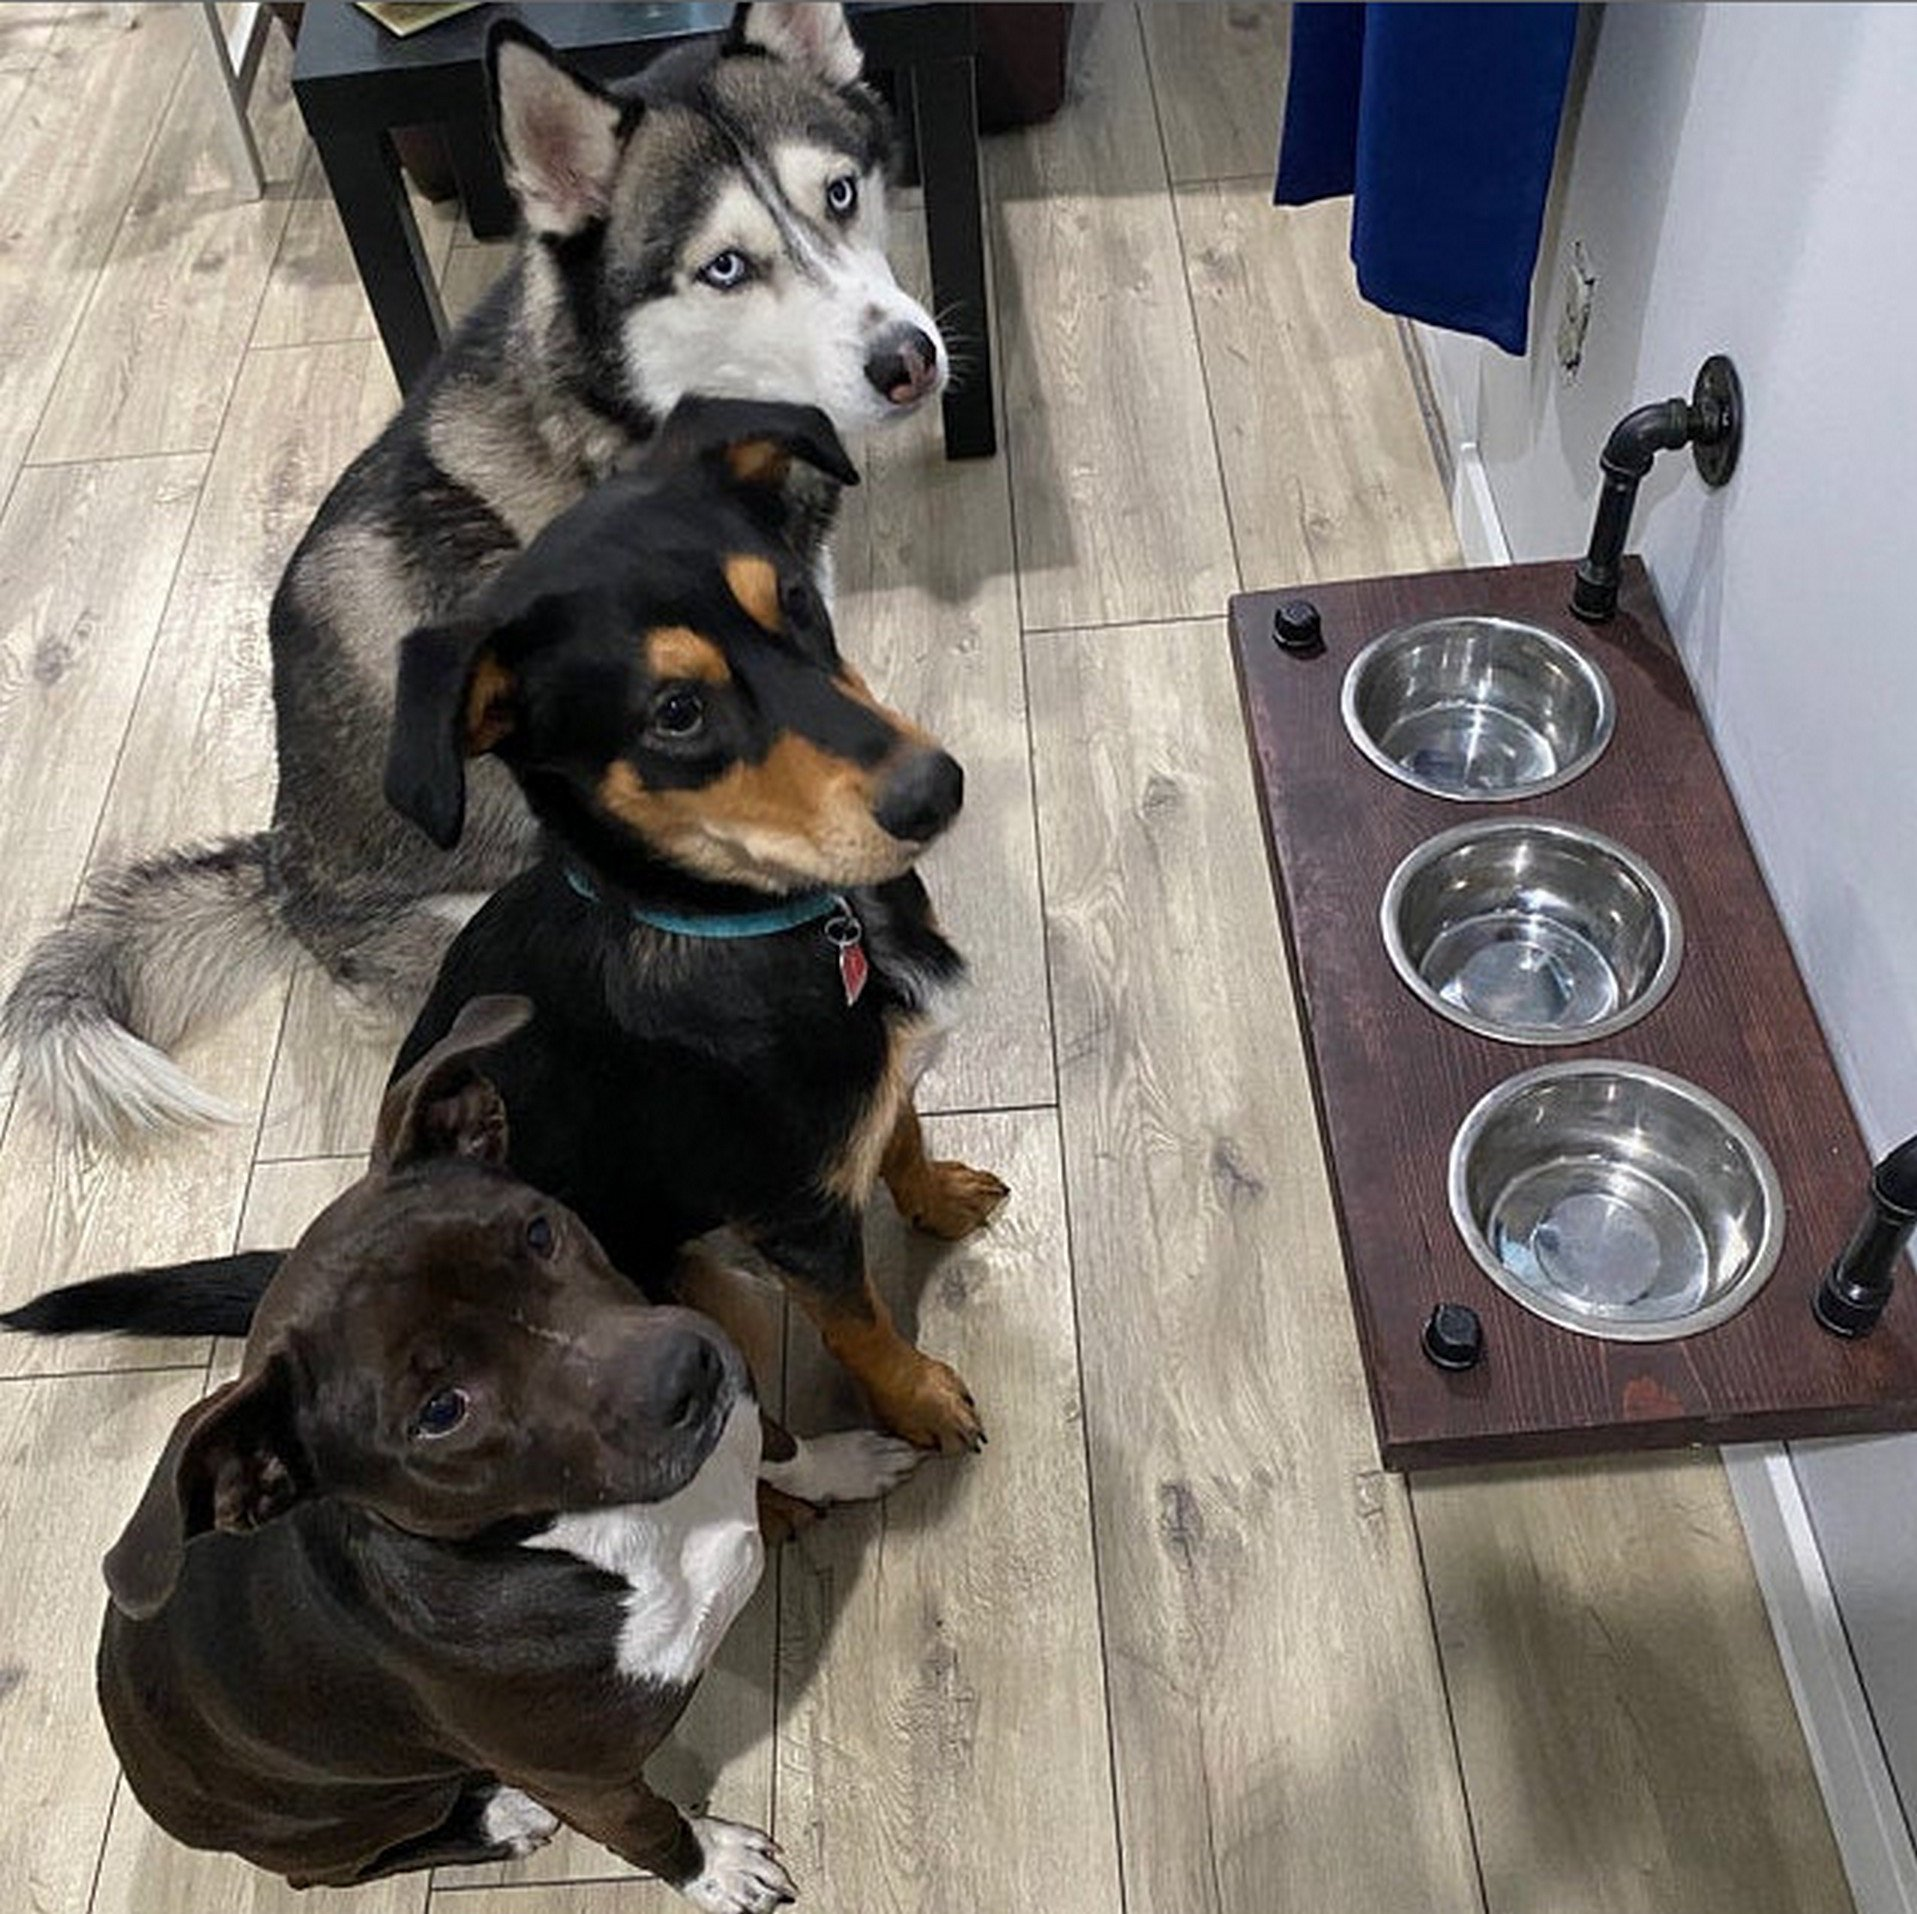 https://www.pipeworkpieces.com/wp-content/uploads/2020/10/floating-dog-bowl-feeder-farmhouse-style-feeder-raised-dog-bowl-feeder-new-lower-prices-5f7b8d62.jpg